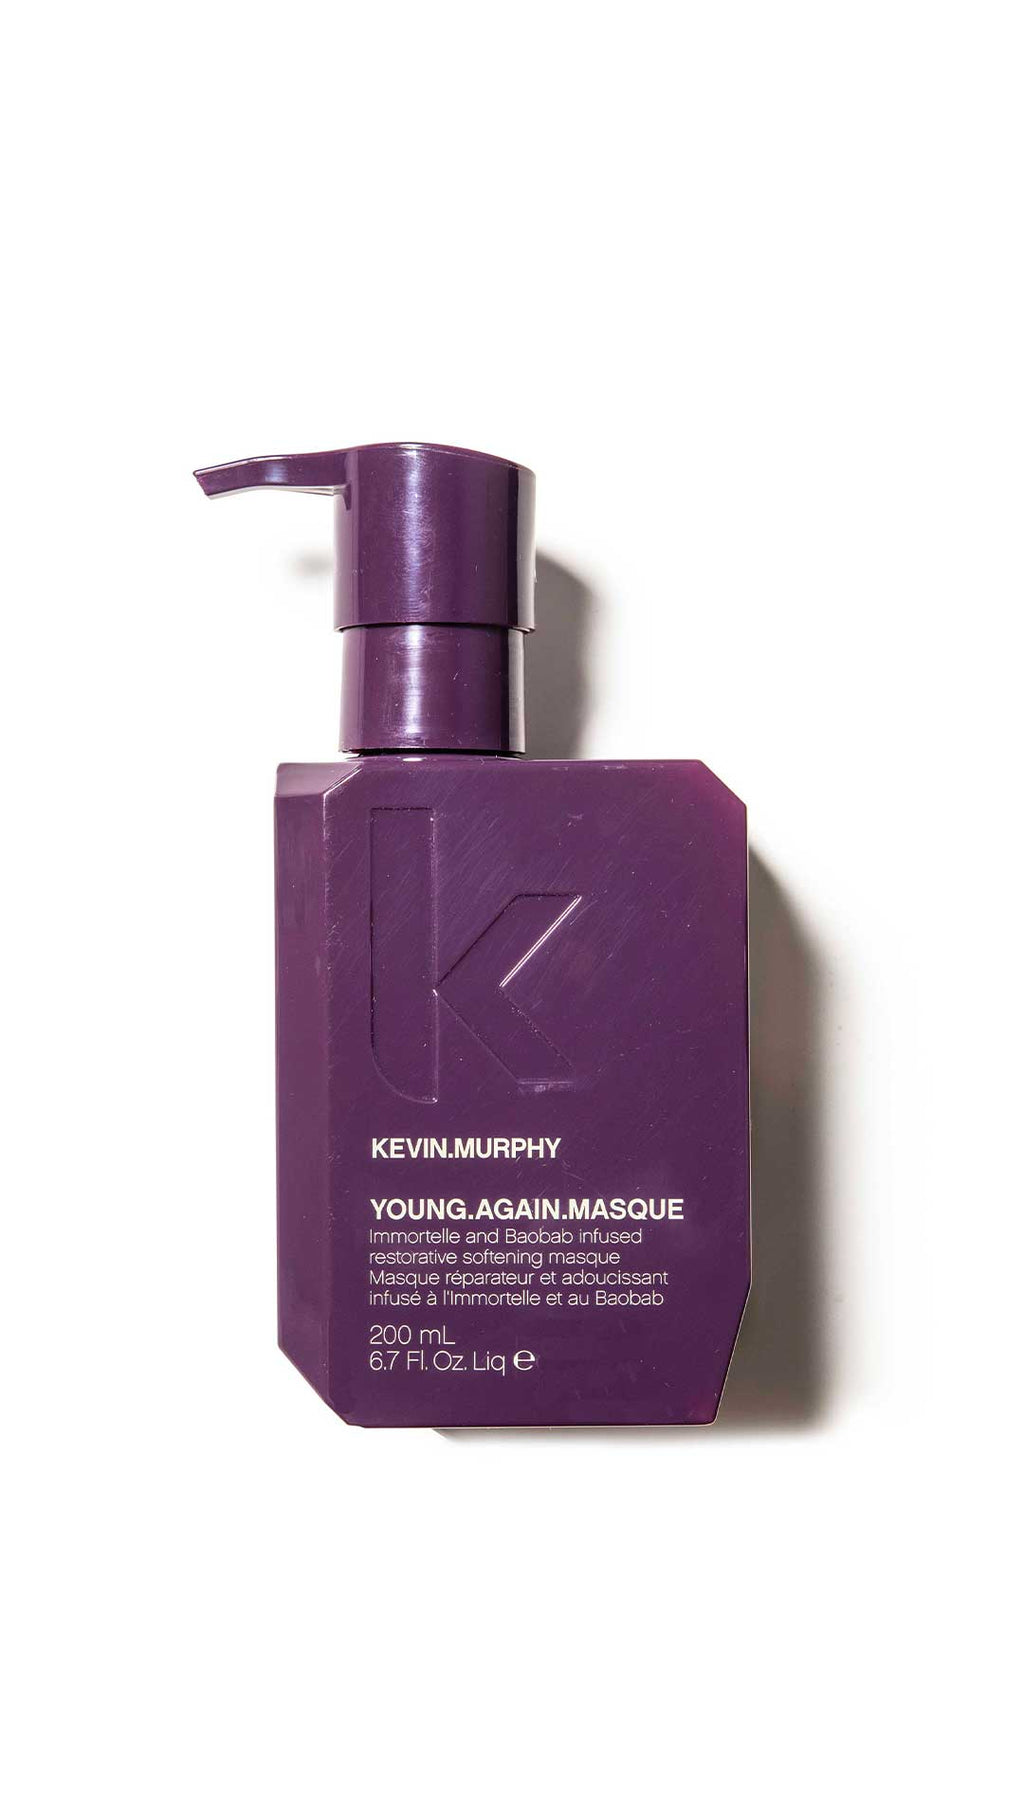 YOUNG.AGAIN.MASQUE - KEVIN MURPHY